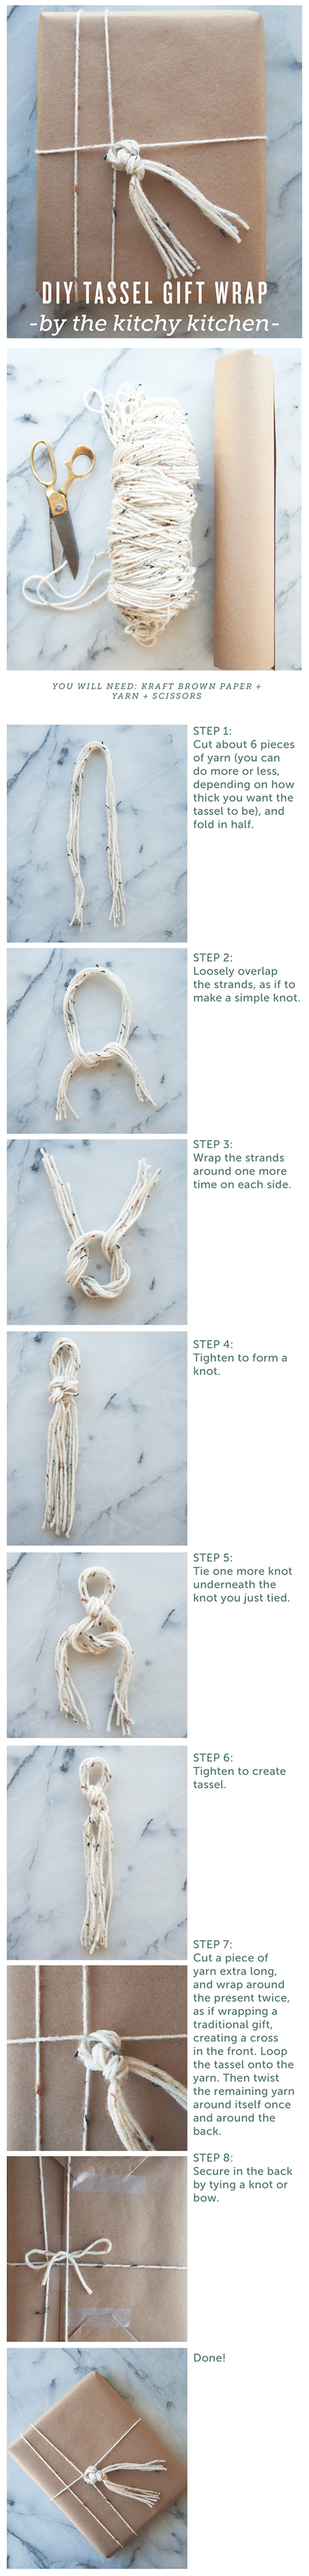 TASSELS // DIY GIFT WRAPPING // The Kitchy Kitchen